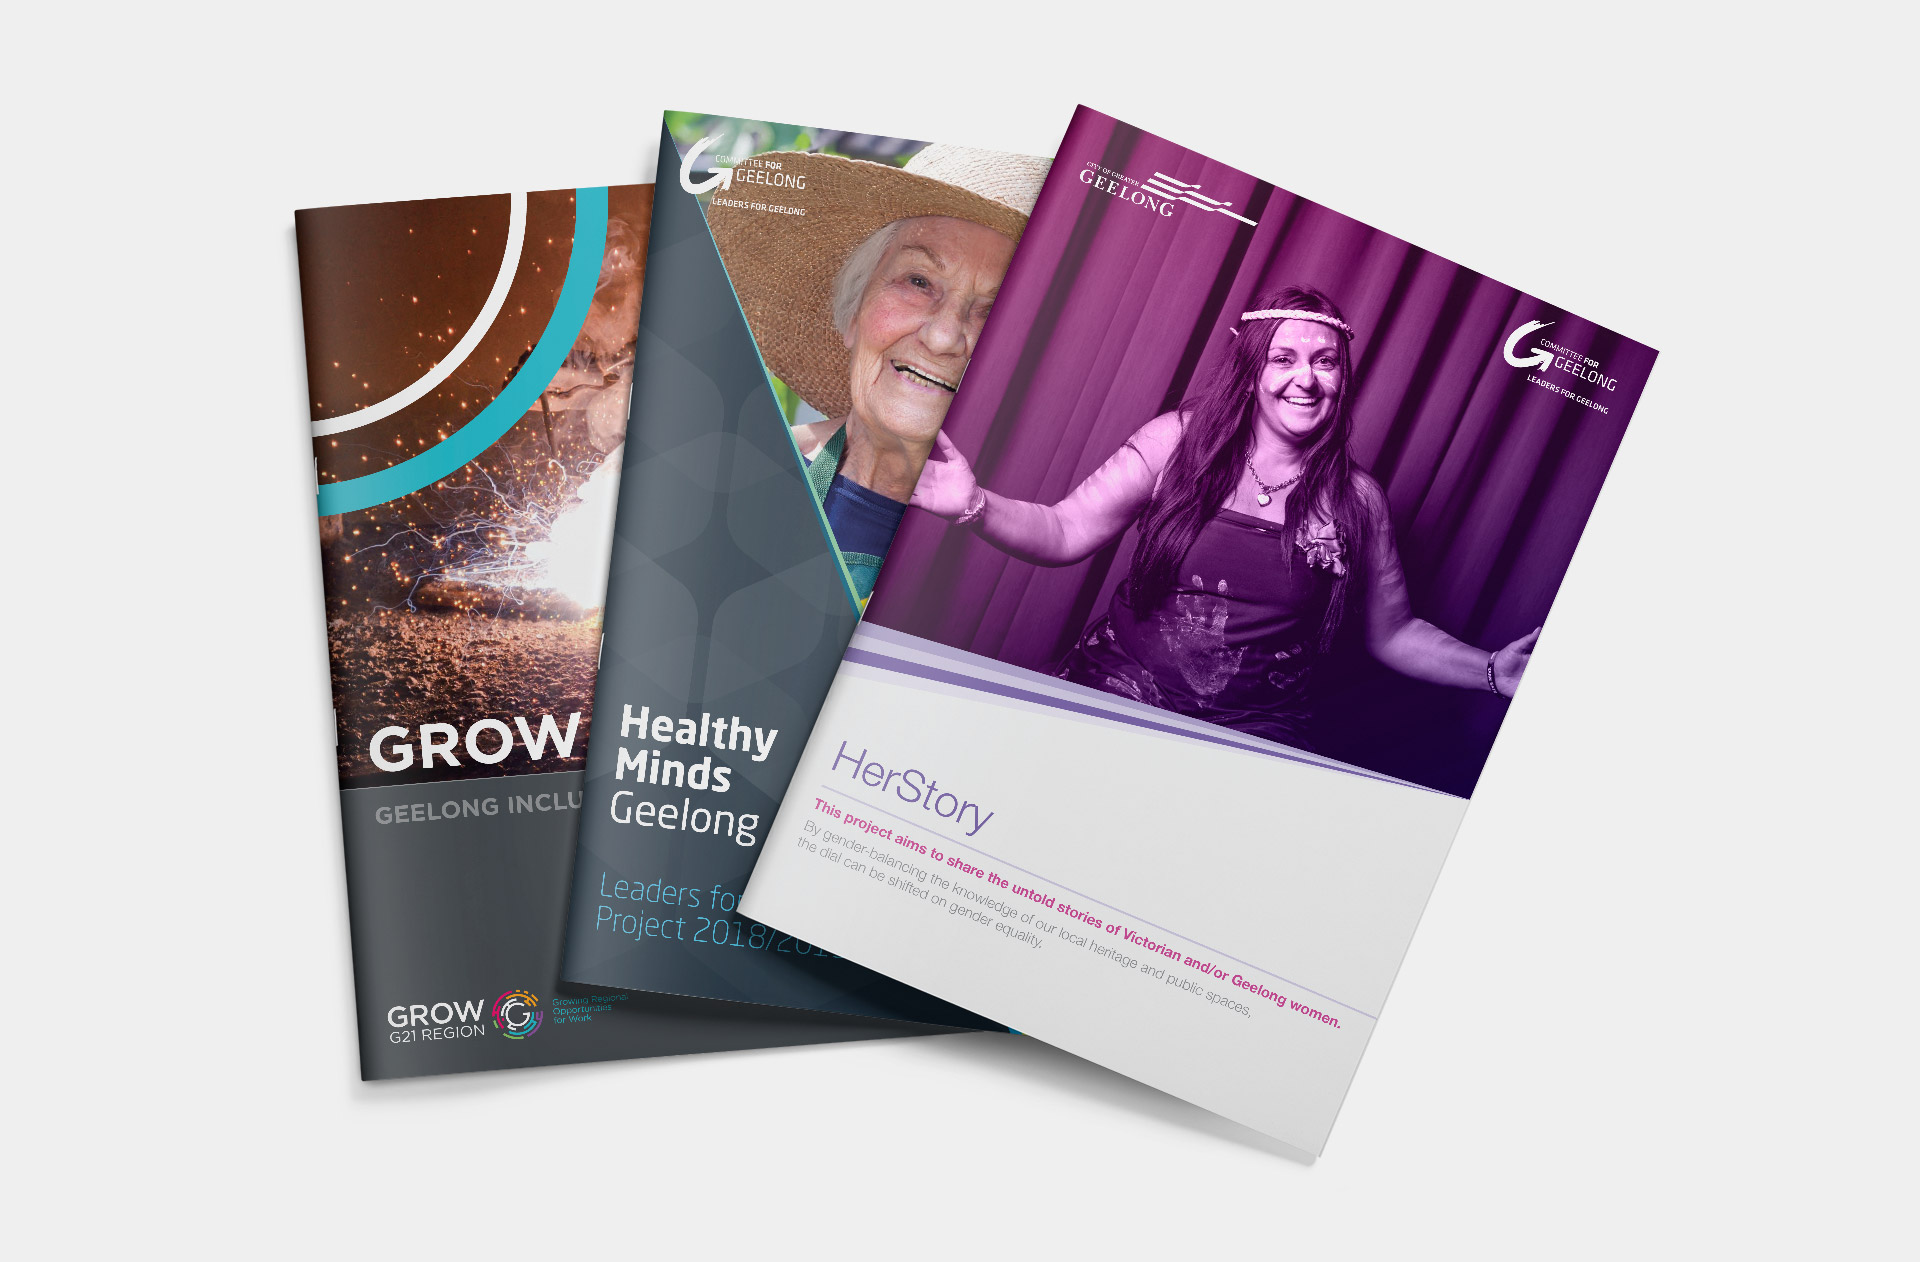 Leaders for Geelong report covers